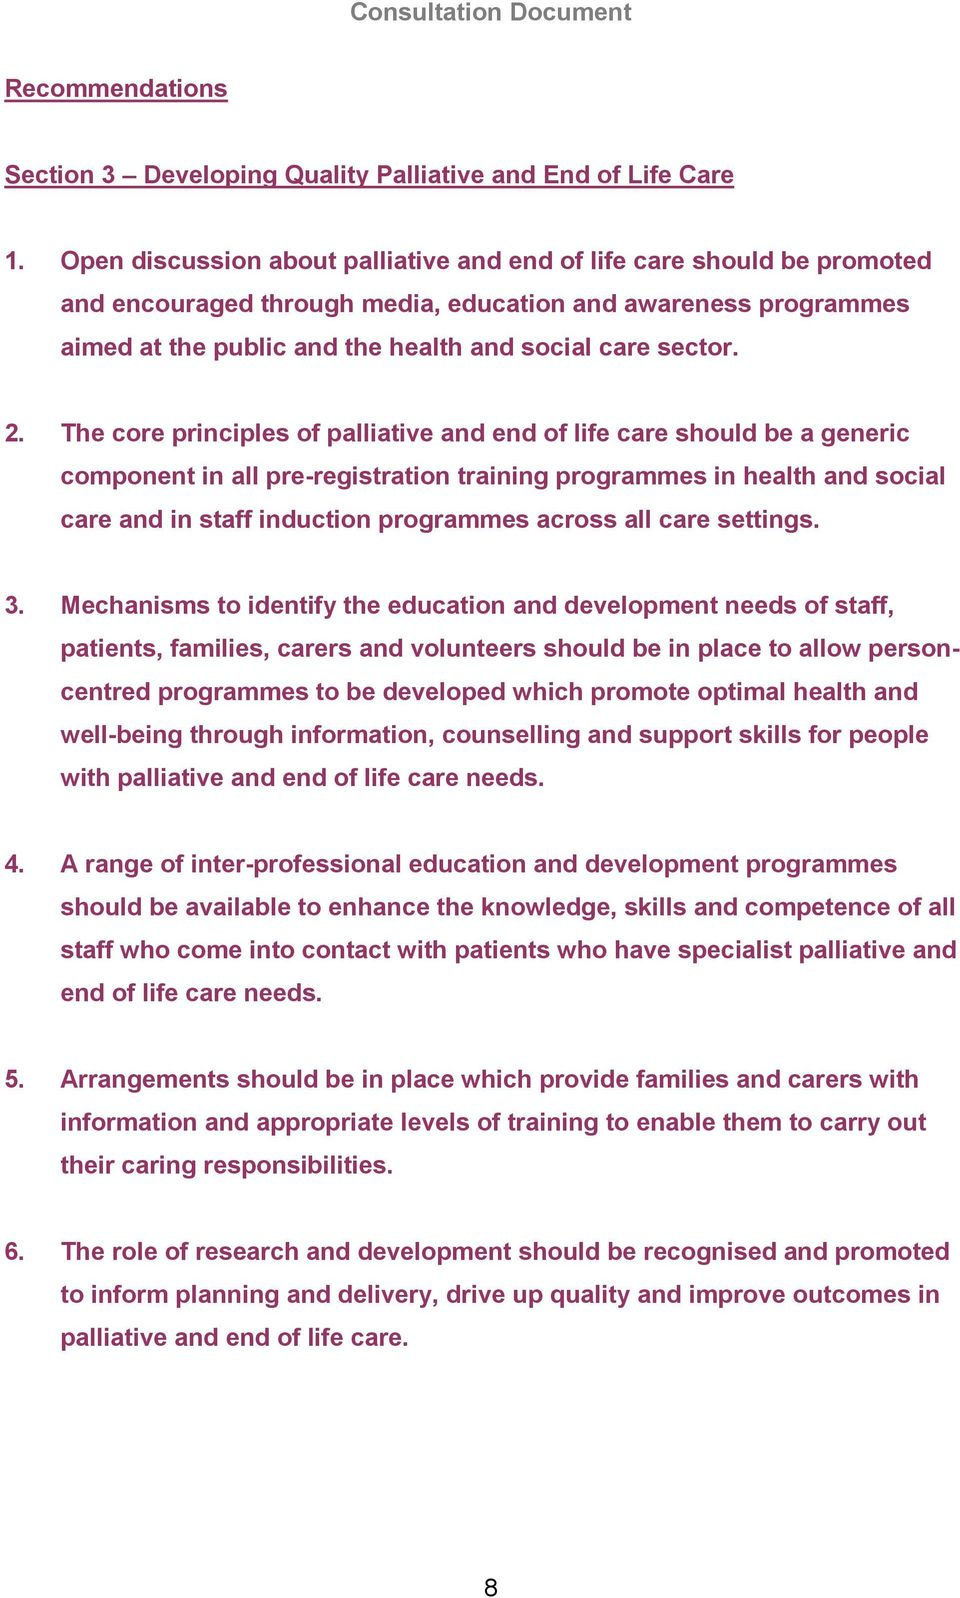 The core principles of palliative and end of life care should be a generic component in all pre-registration training programmes in health and social care and in staff induction programmes across all